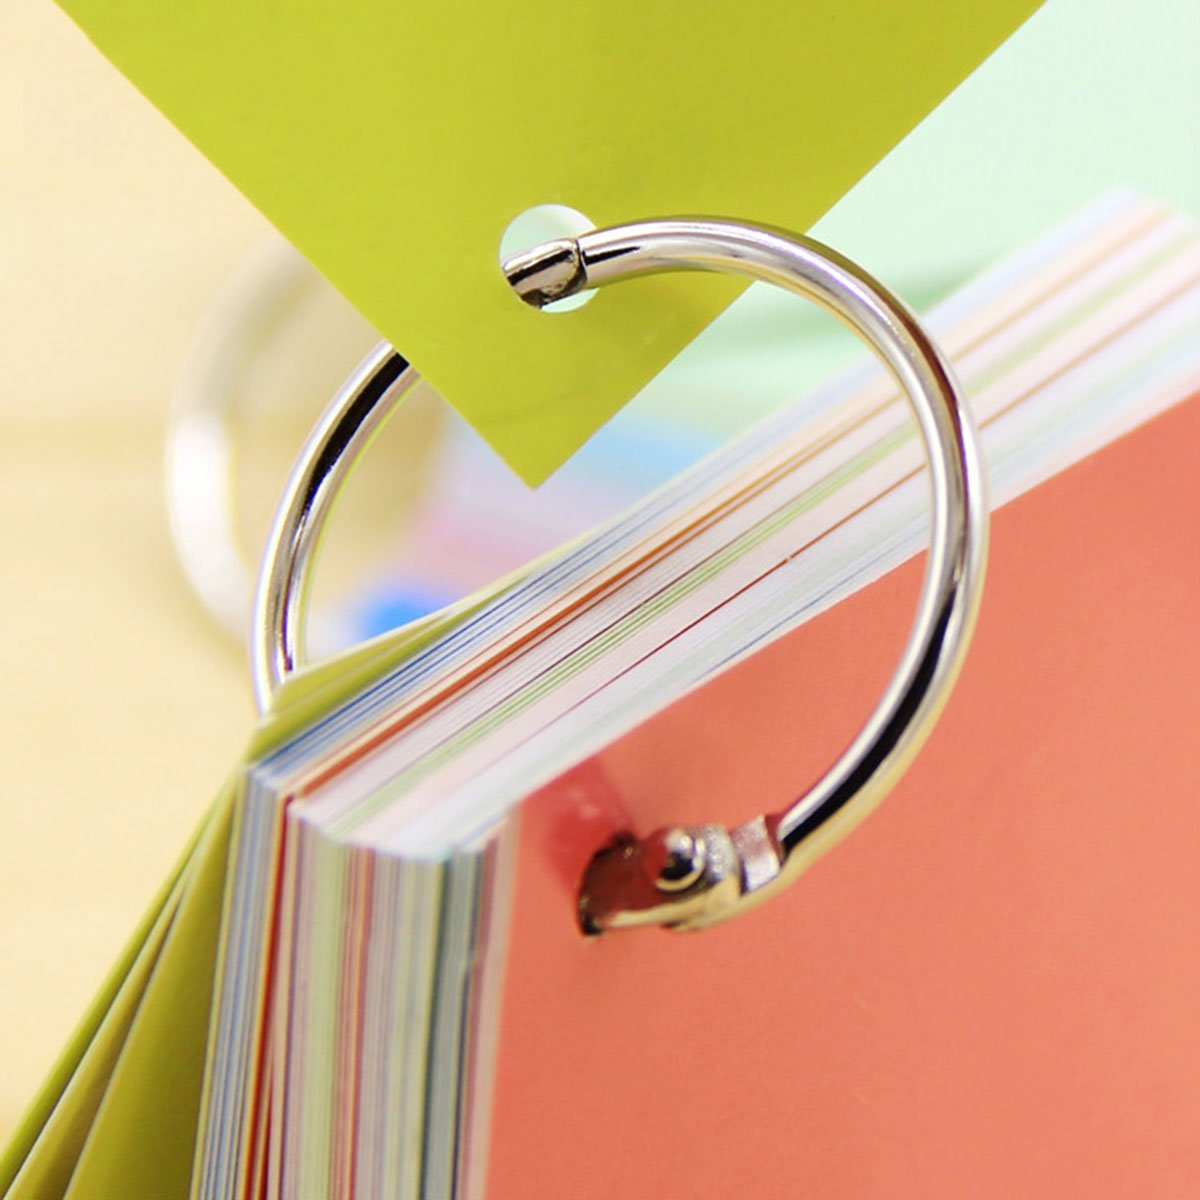 Round Loose Leaf Binder Rings Metal Book Rings Paper Notebook Album Photo  Rings Curtain Hooks Rings Clips Keychains Keyrings for School,Home,or  Office 1.18 Inch,Multicolor,50 Pieces by WWahuayuan nayancorporation.com